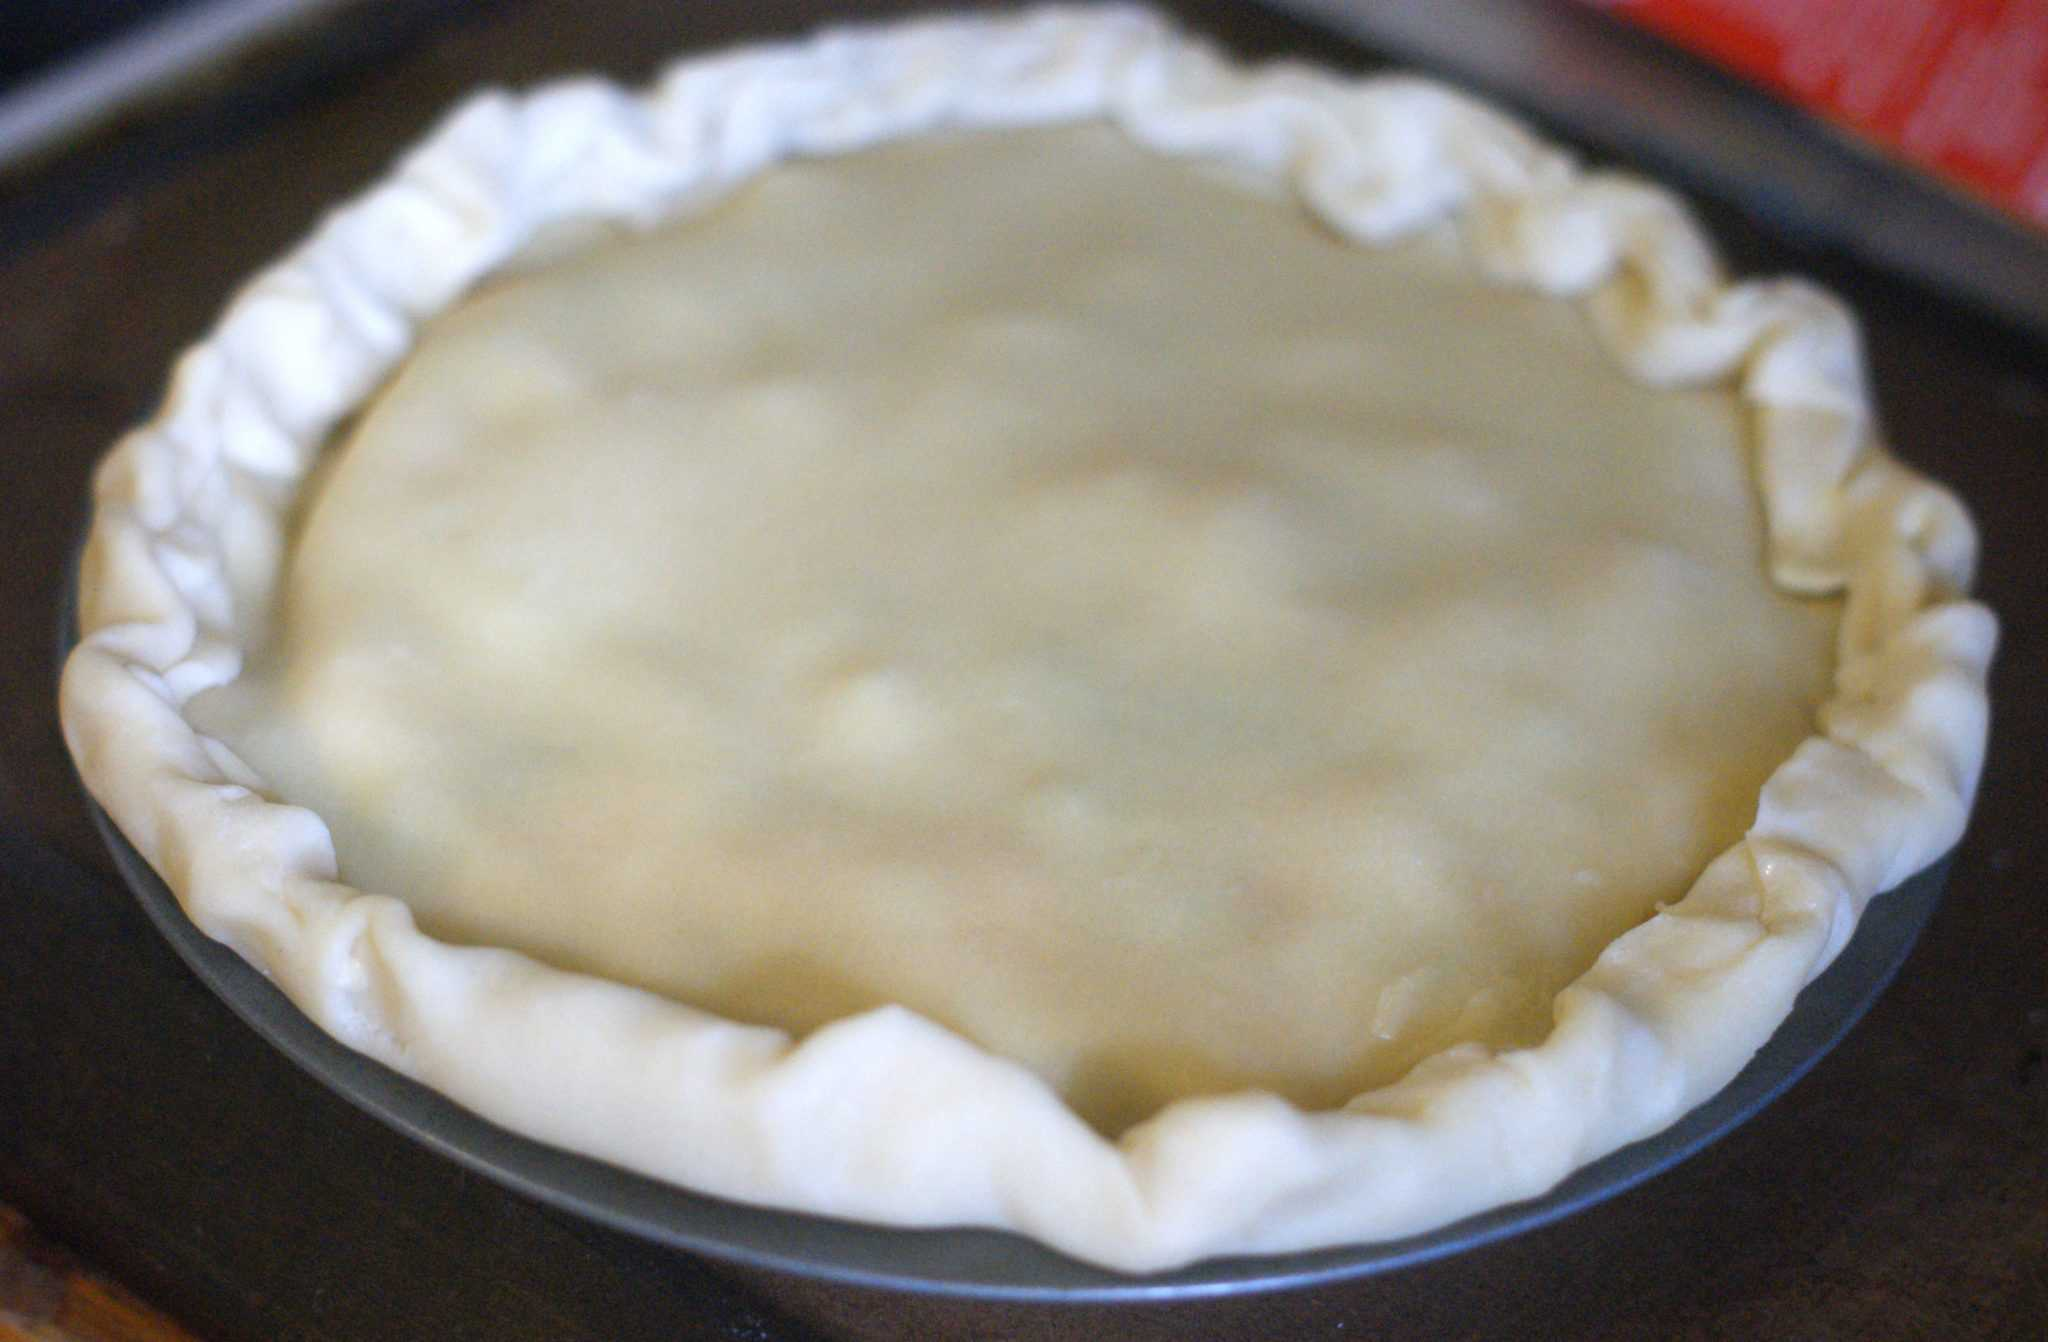 Chicken pot pie uncooked with pie crust - #dinner #recipe #chickenpotpie #easyrecipe #mealplan #freezercooking #mealprep #chickenrecipe